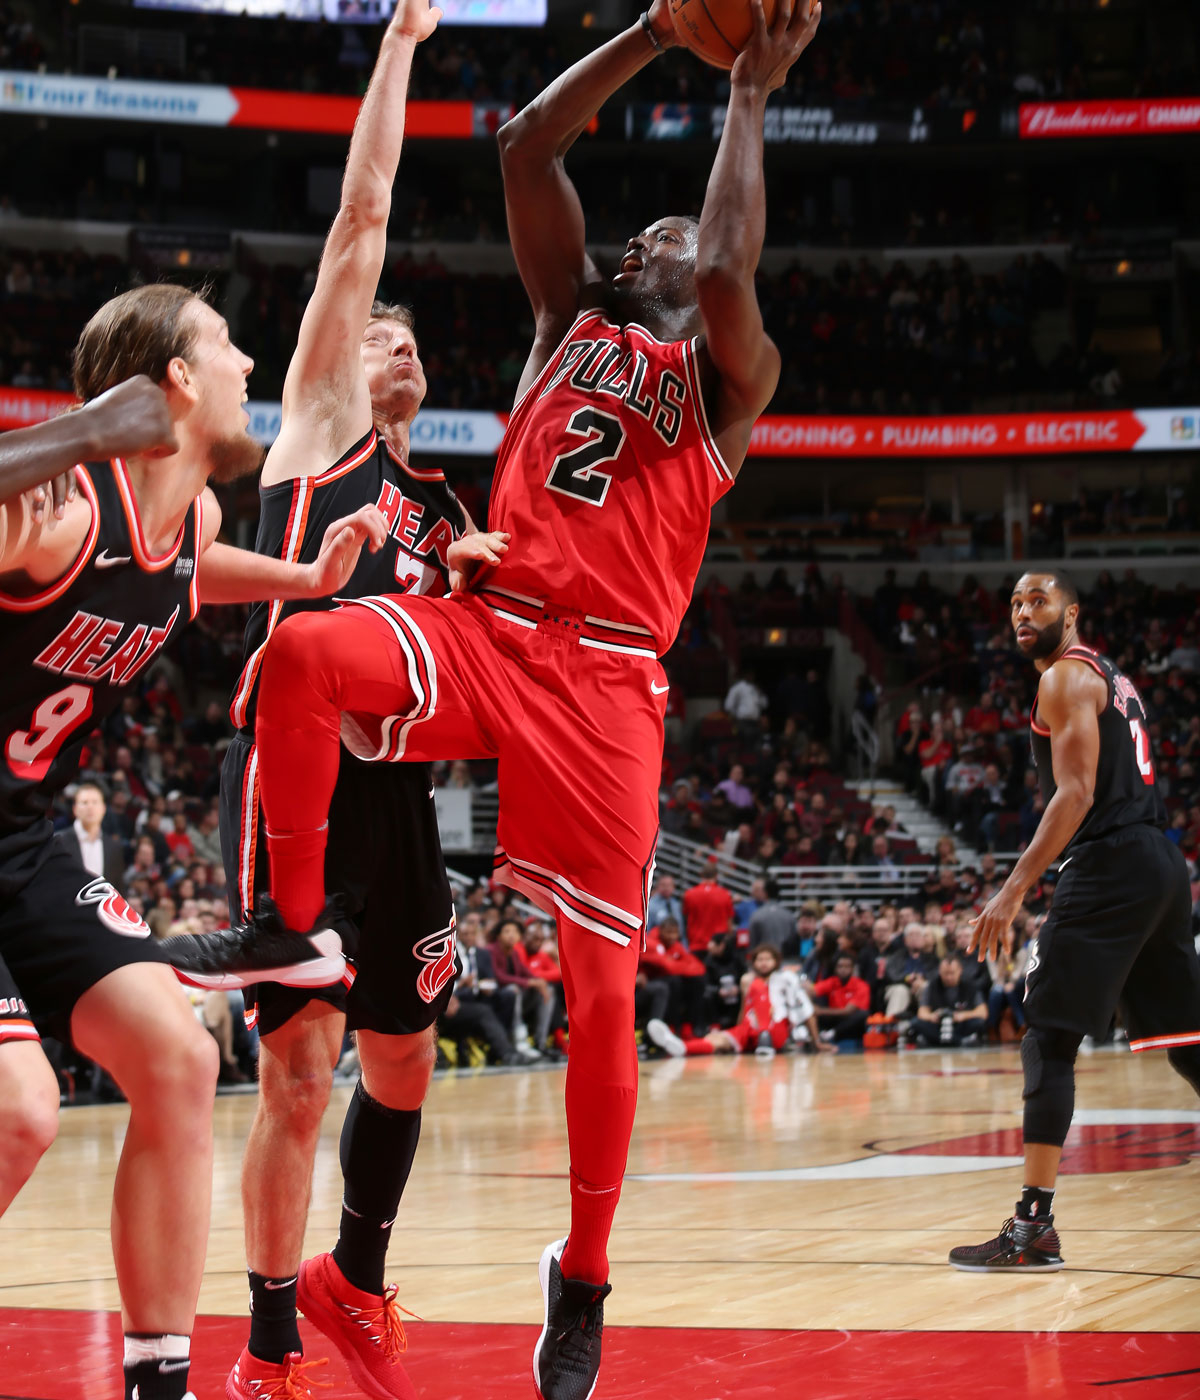 Jerian Grant #2 of the Chicago Bulls handles the ball against the Miami Heat on November 26, 2017 at the United Center in Chicago, Illinois.